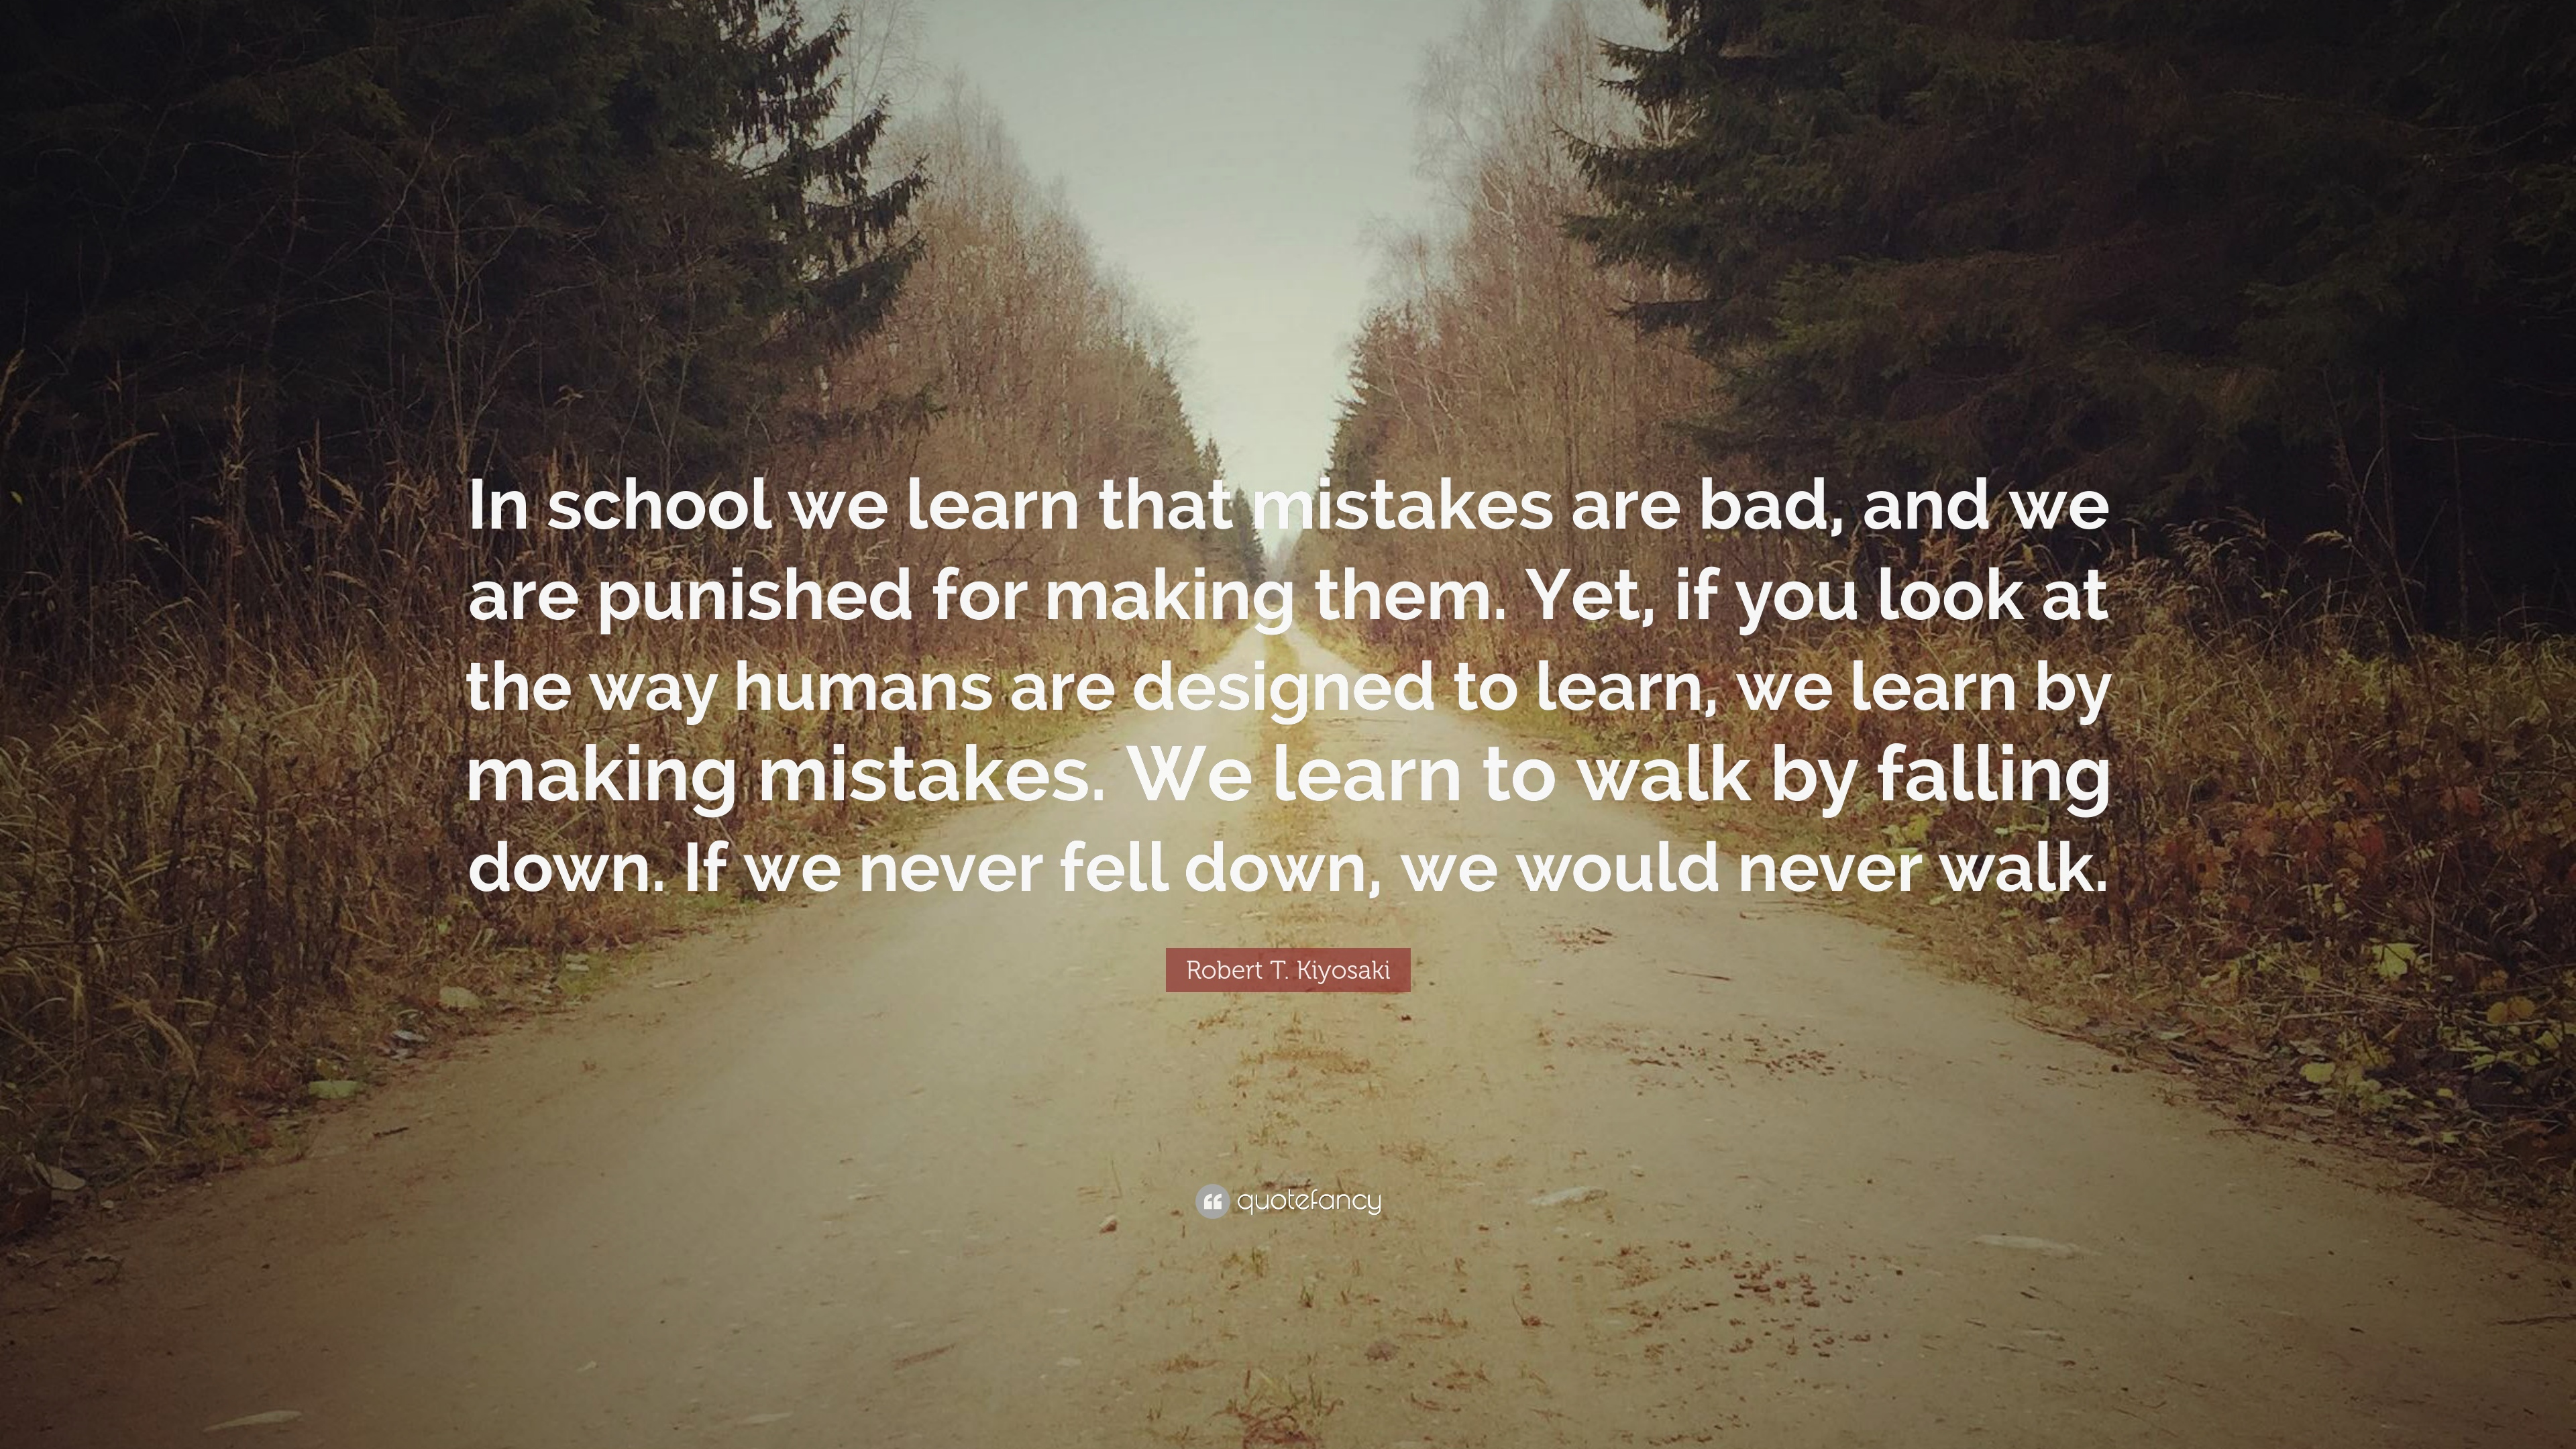 Robert T Kiyosaki Quote In School We Learn That Mistakes Are Bad